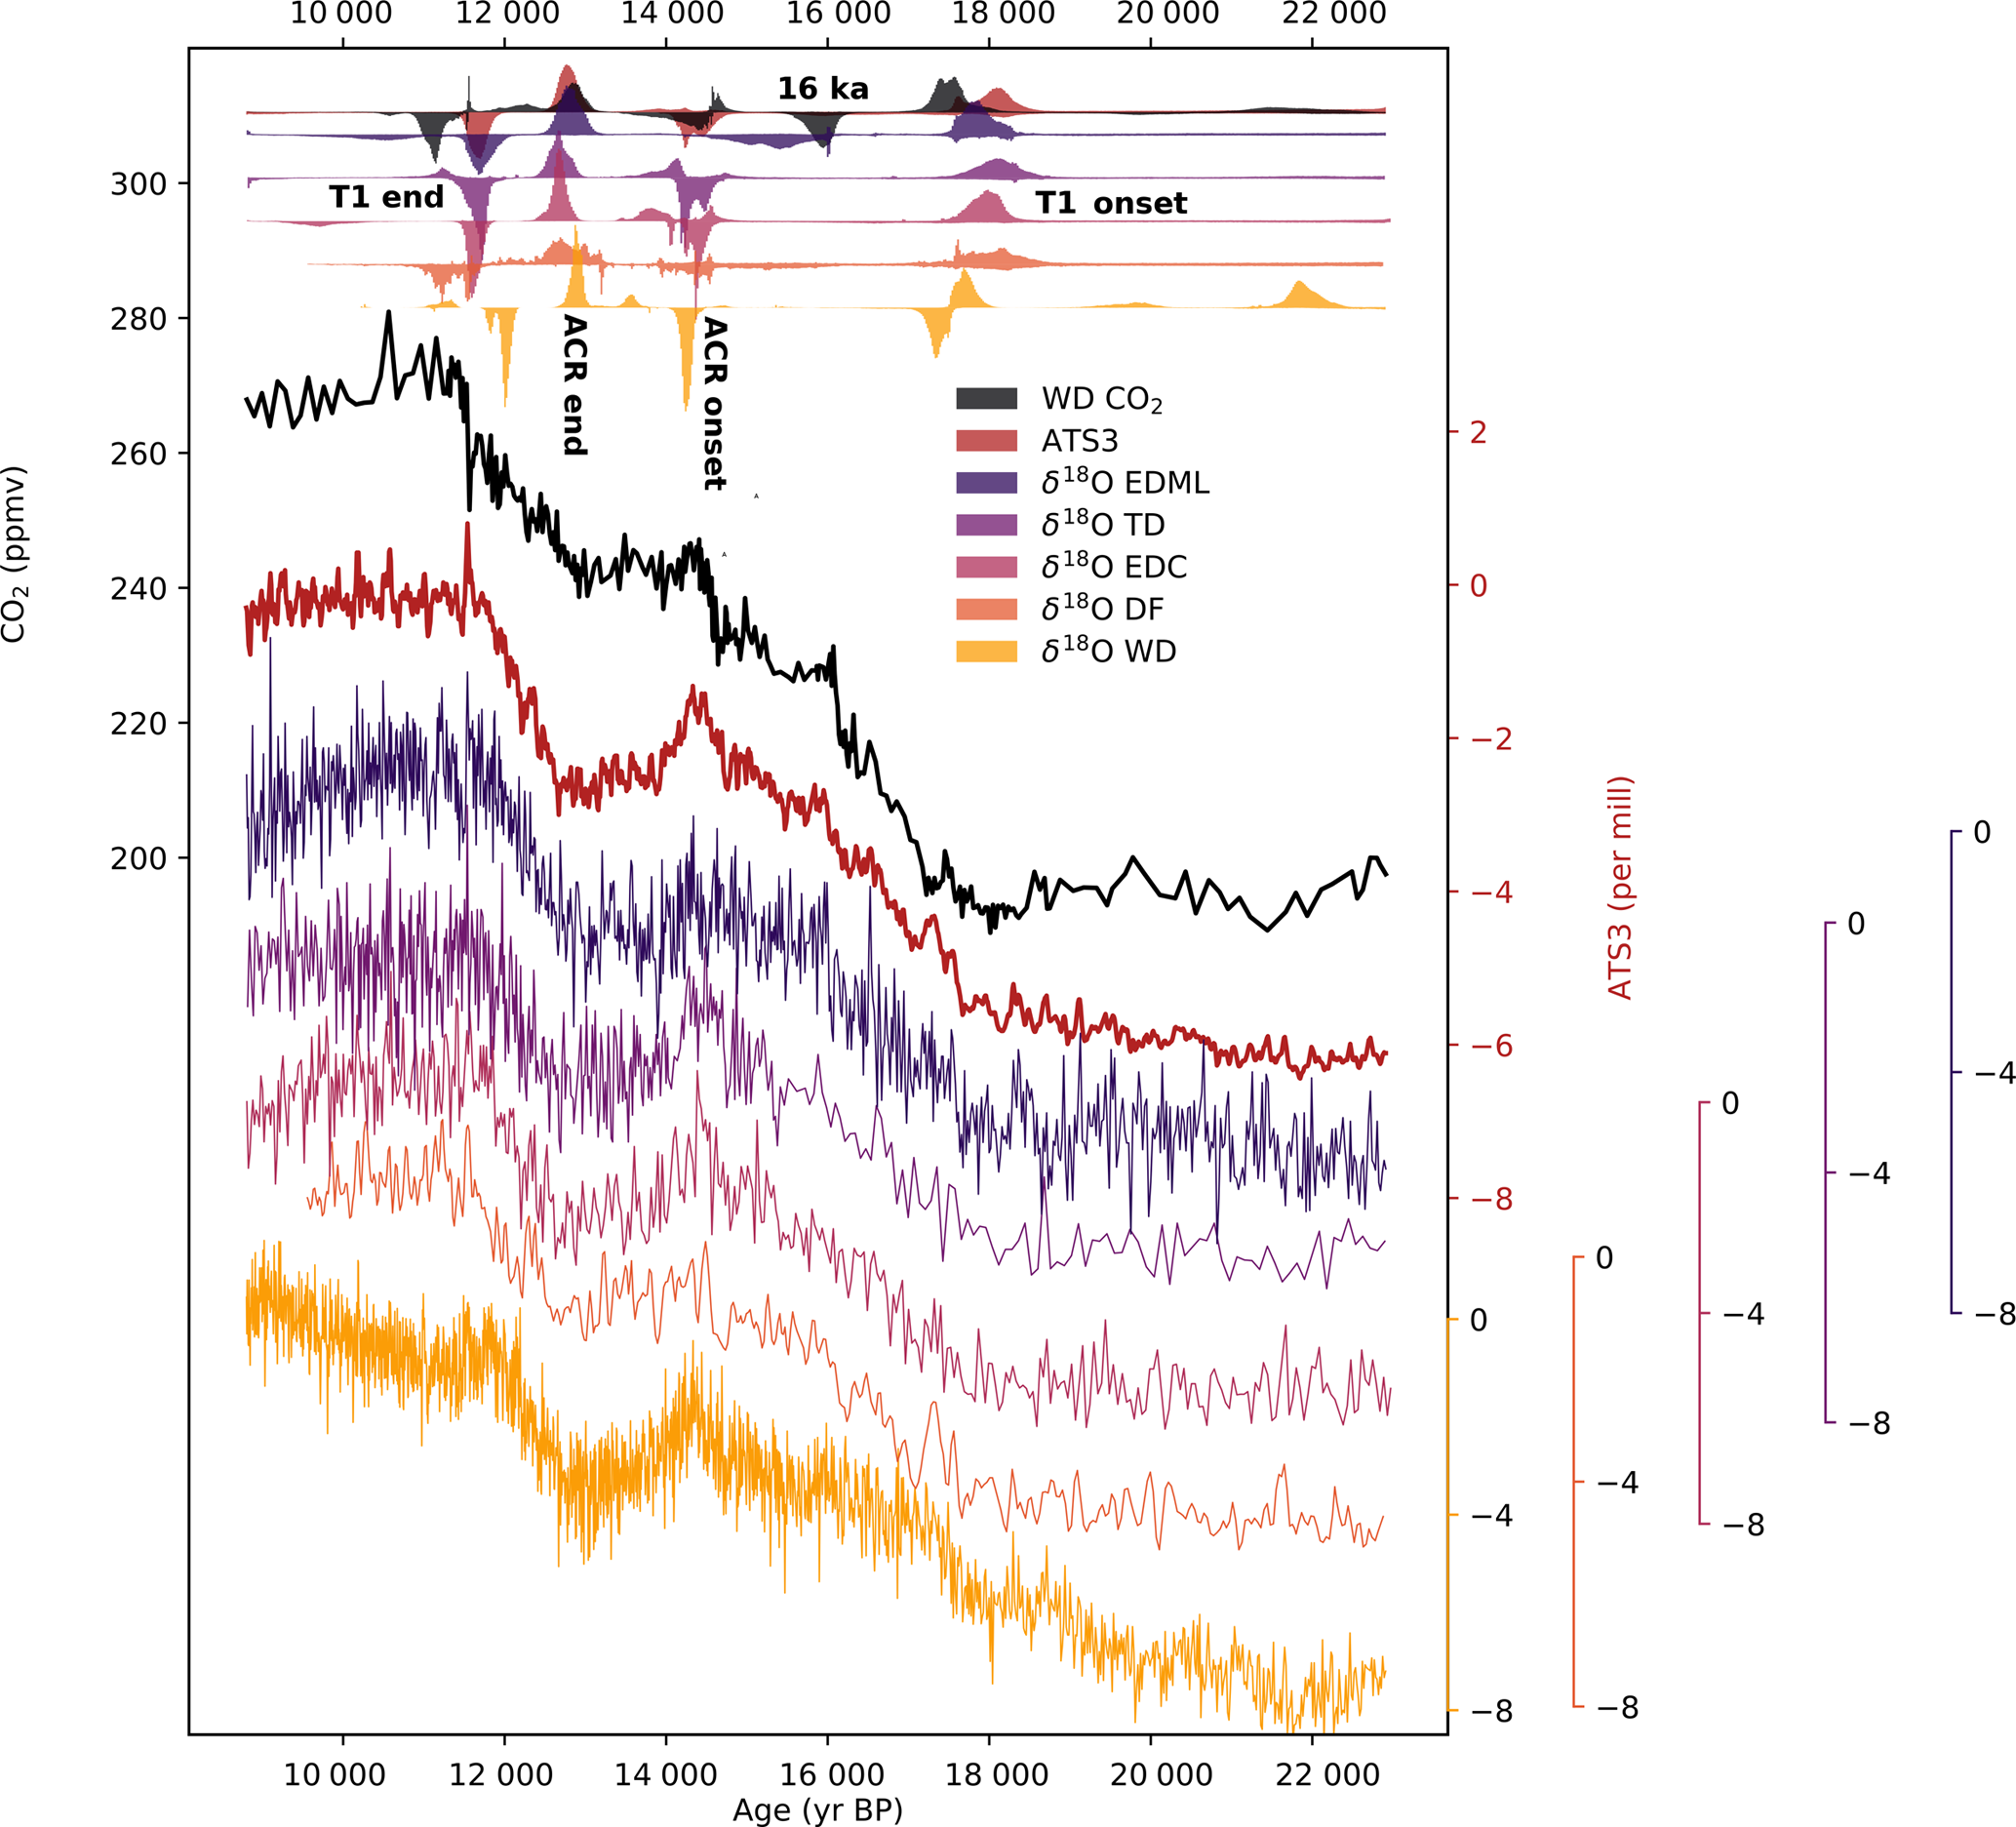 CP - Antarctic temperature and CO2: near-synchrony yet